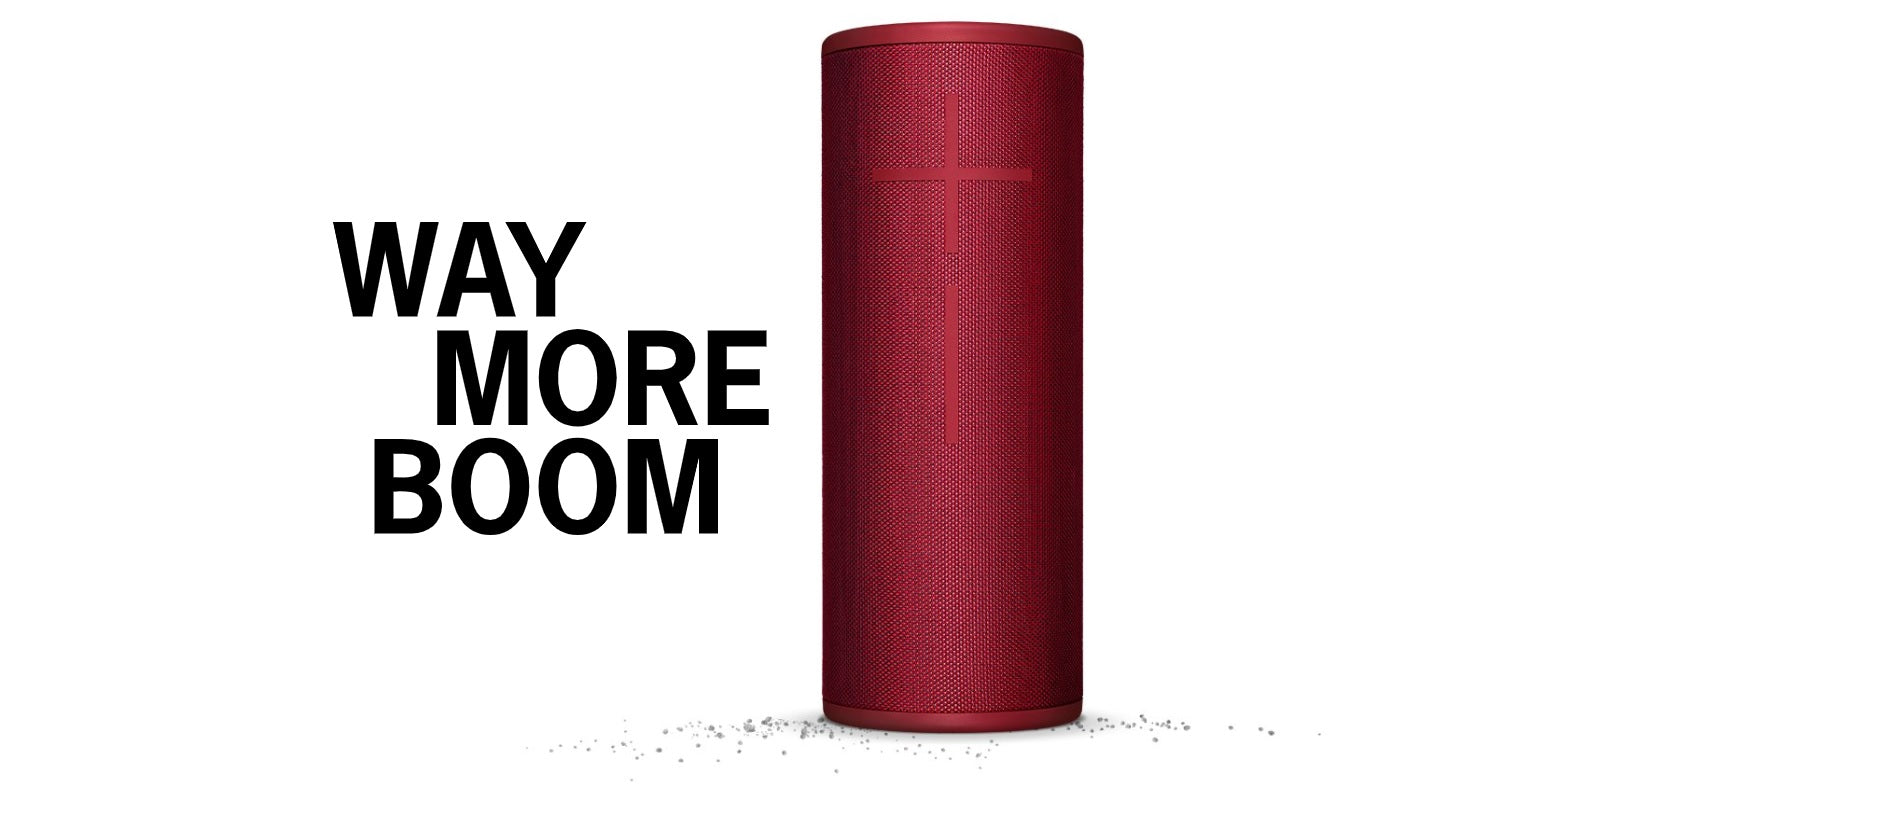 Ultimate Ears Megaboom 3 gives you way more boom